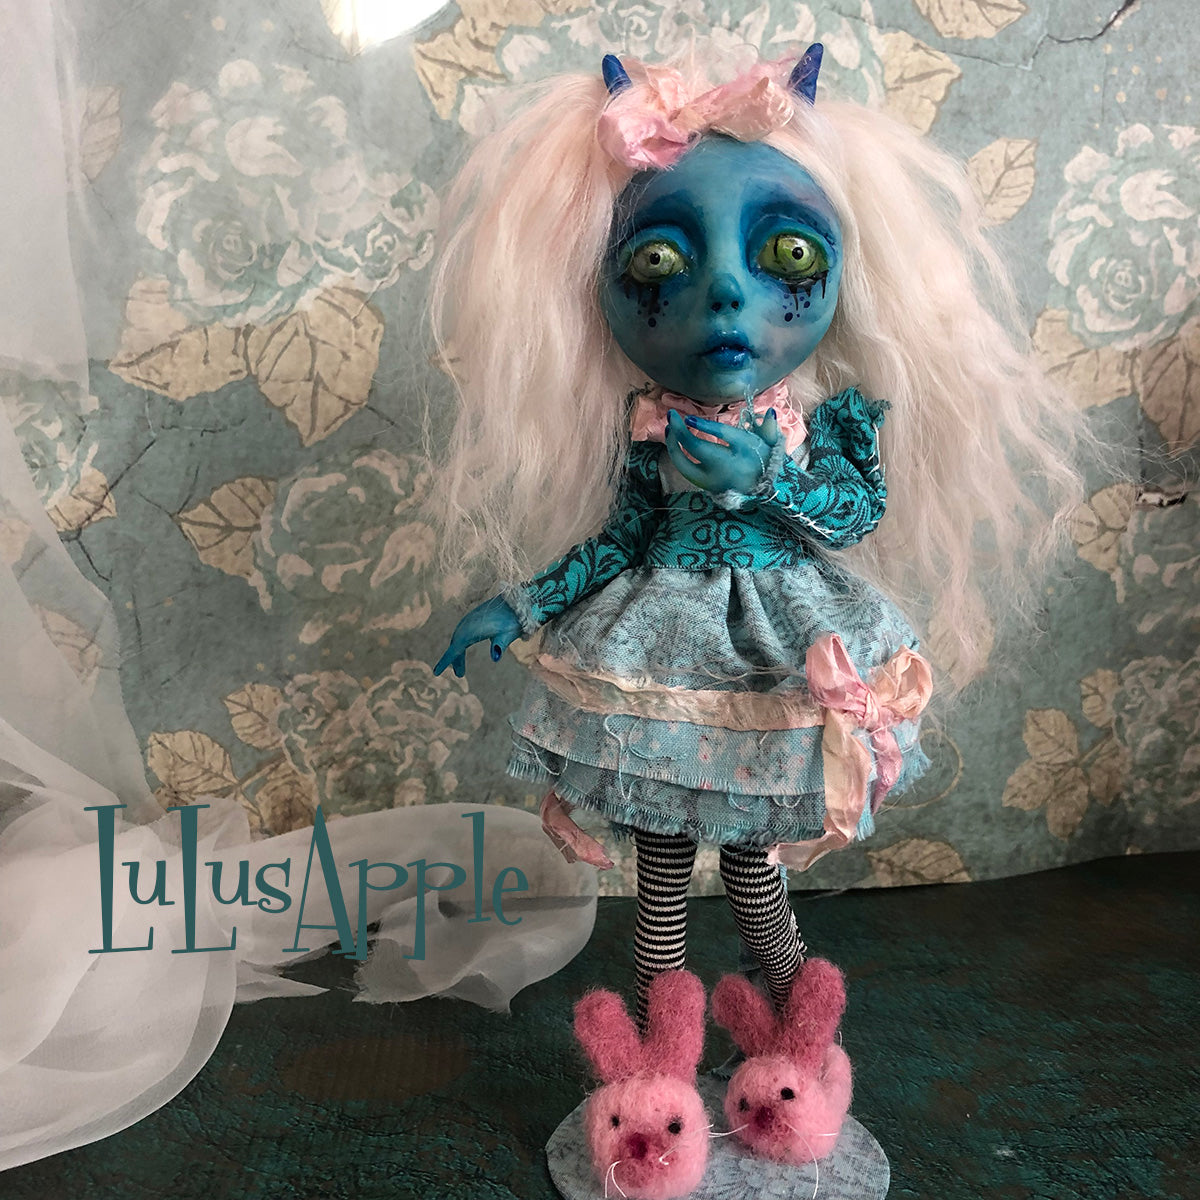 Pooka Monster Demon mini OOAK LuLusApple Art Doll